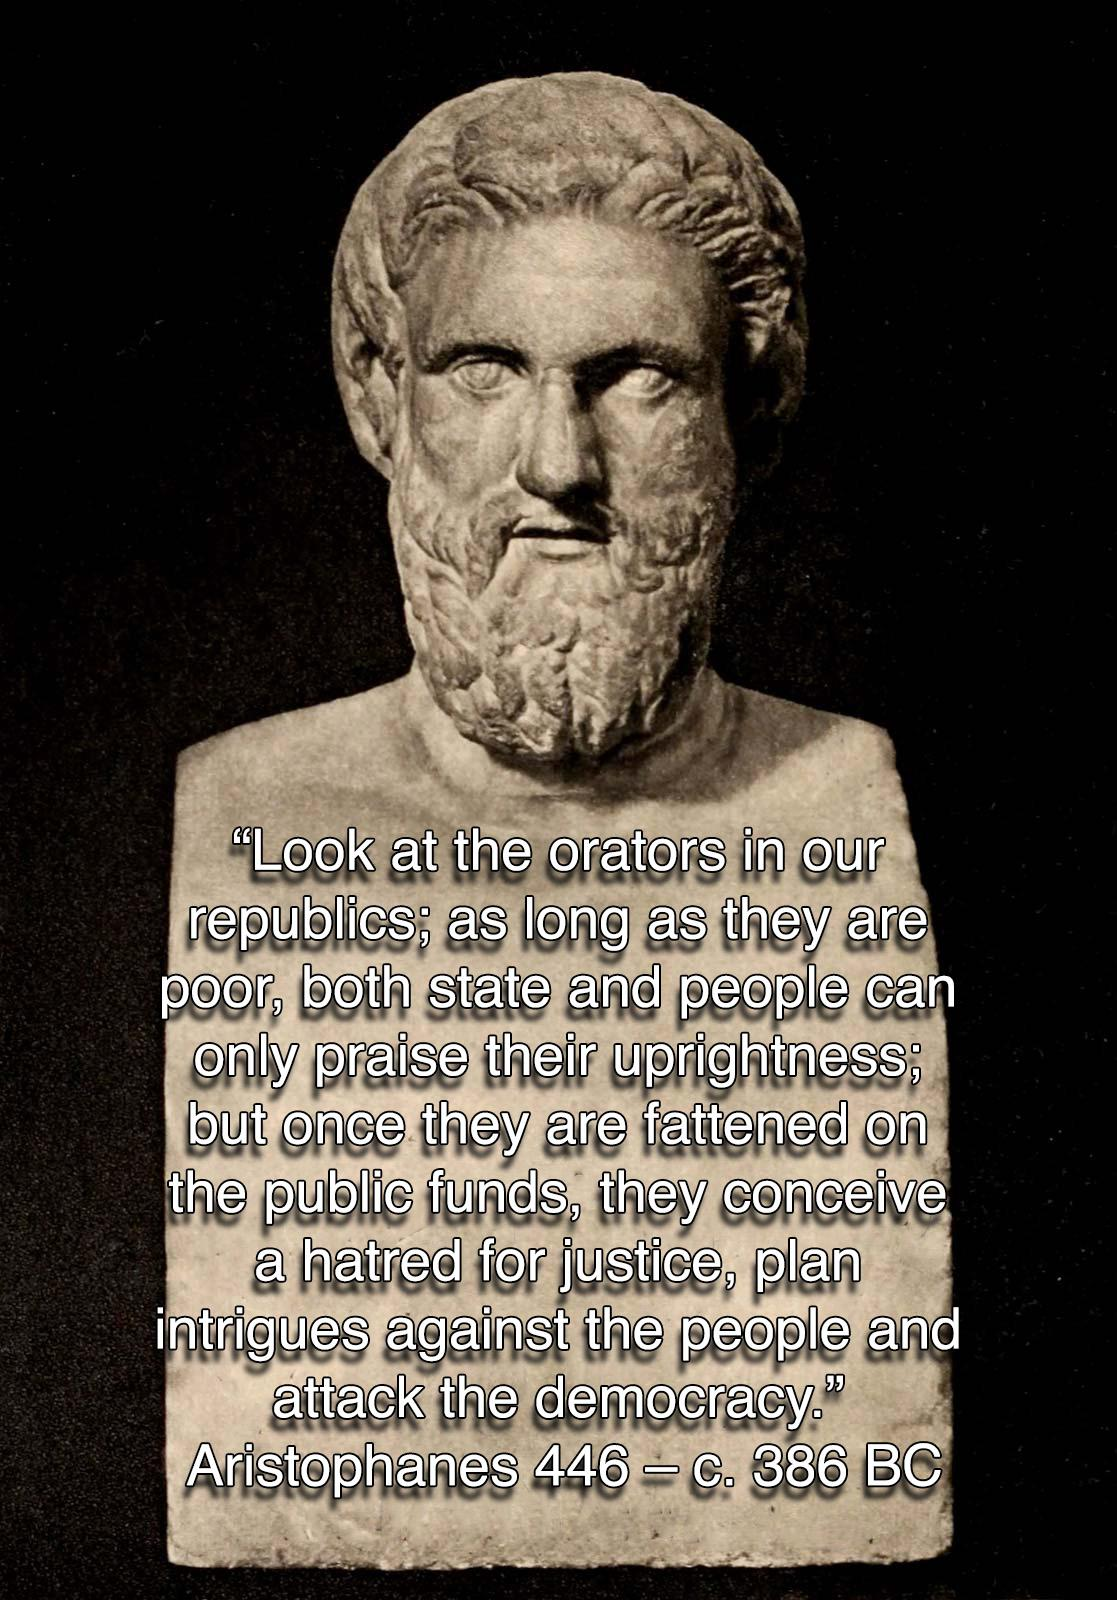 """""""Look at the orators in our republics; as long as they are poor, both state and people can only praise their uprightness; but once they are fattened on the public funds, they conceive a hatred for justice, plan intrigues against the people and attack the democracy."""" ― Aristophanes [OC][1117 × 1600]"""